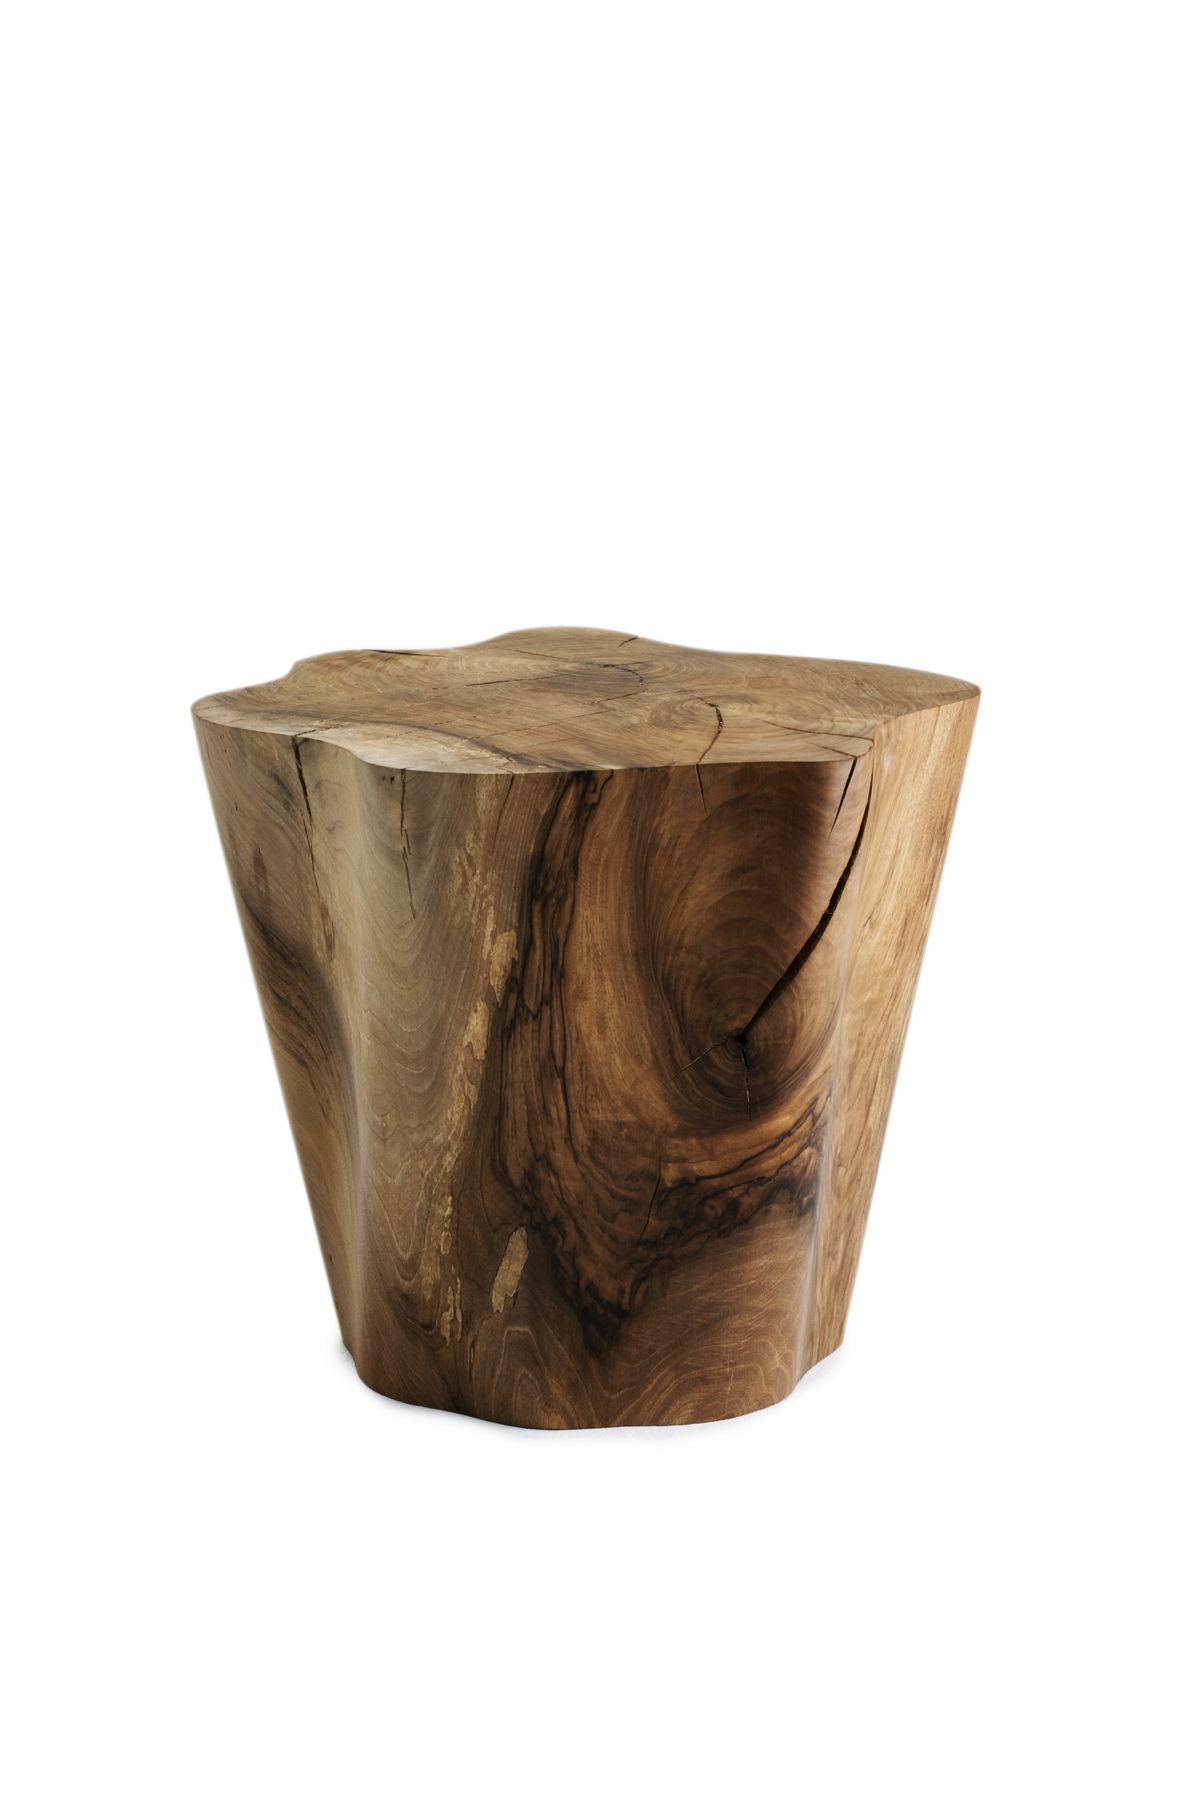 Mobilier Tronc D Arbre by the trees' side table | table tronc d'arbre, mobilier de